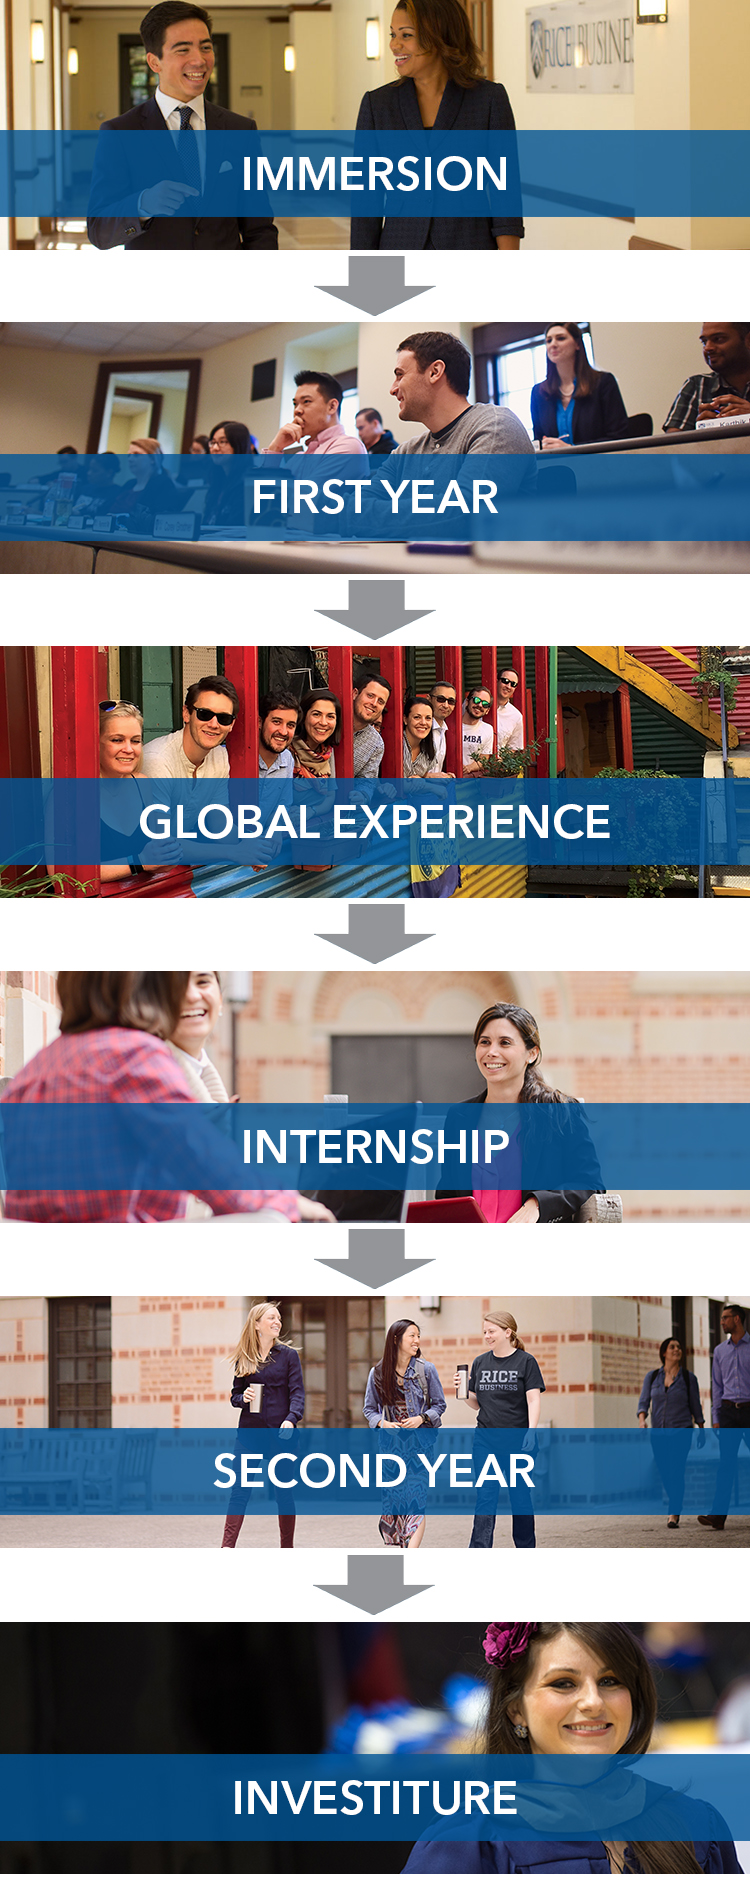 Your Journey at Rice Business - FTMBA: Immersion, First Year, Global Experience, Internship, Second Year, Investiture